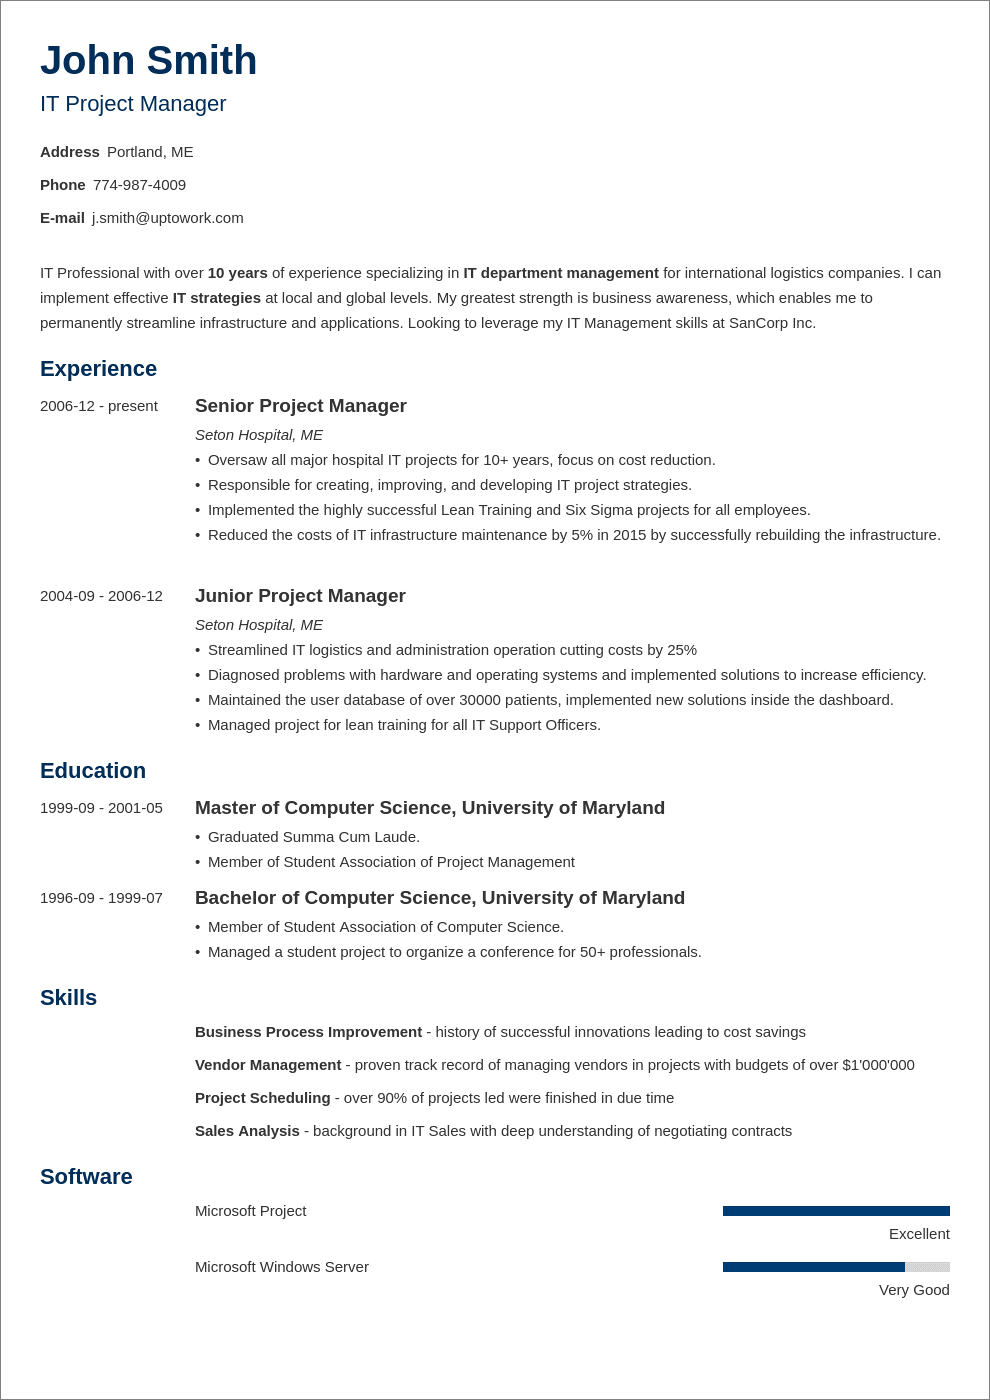 one-page resume style